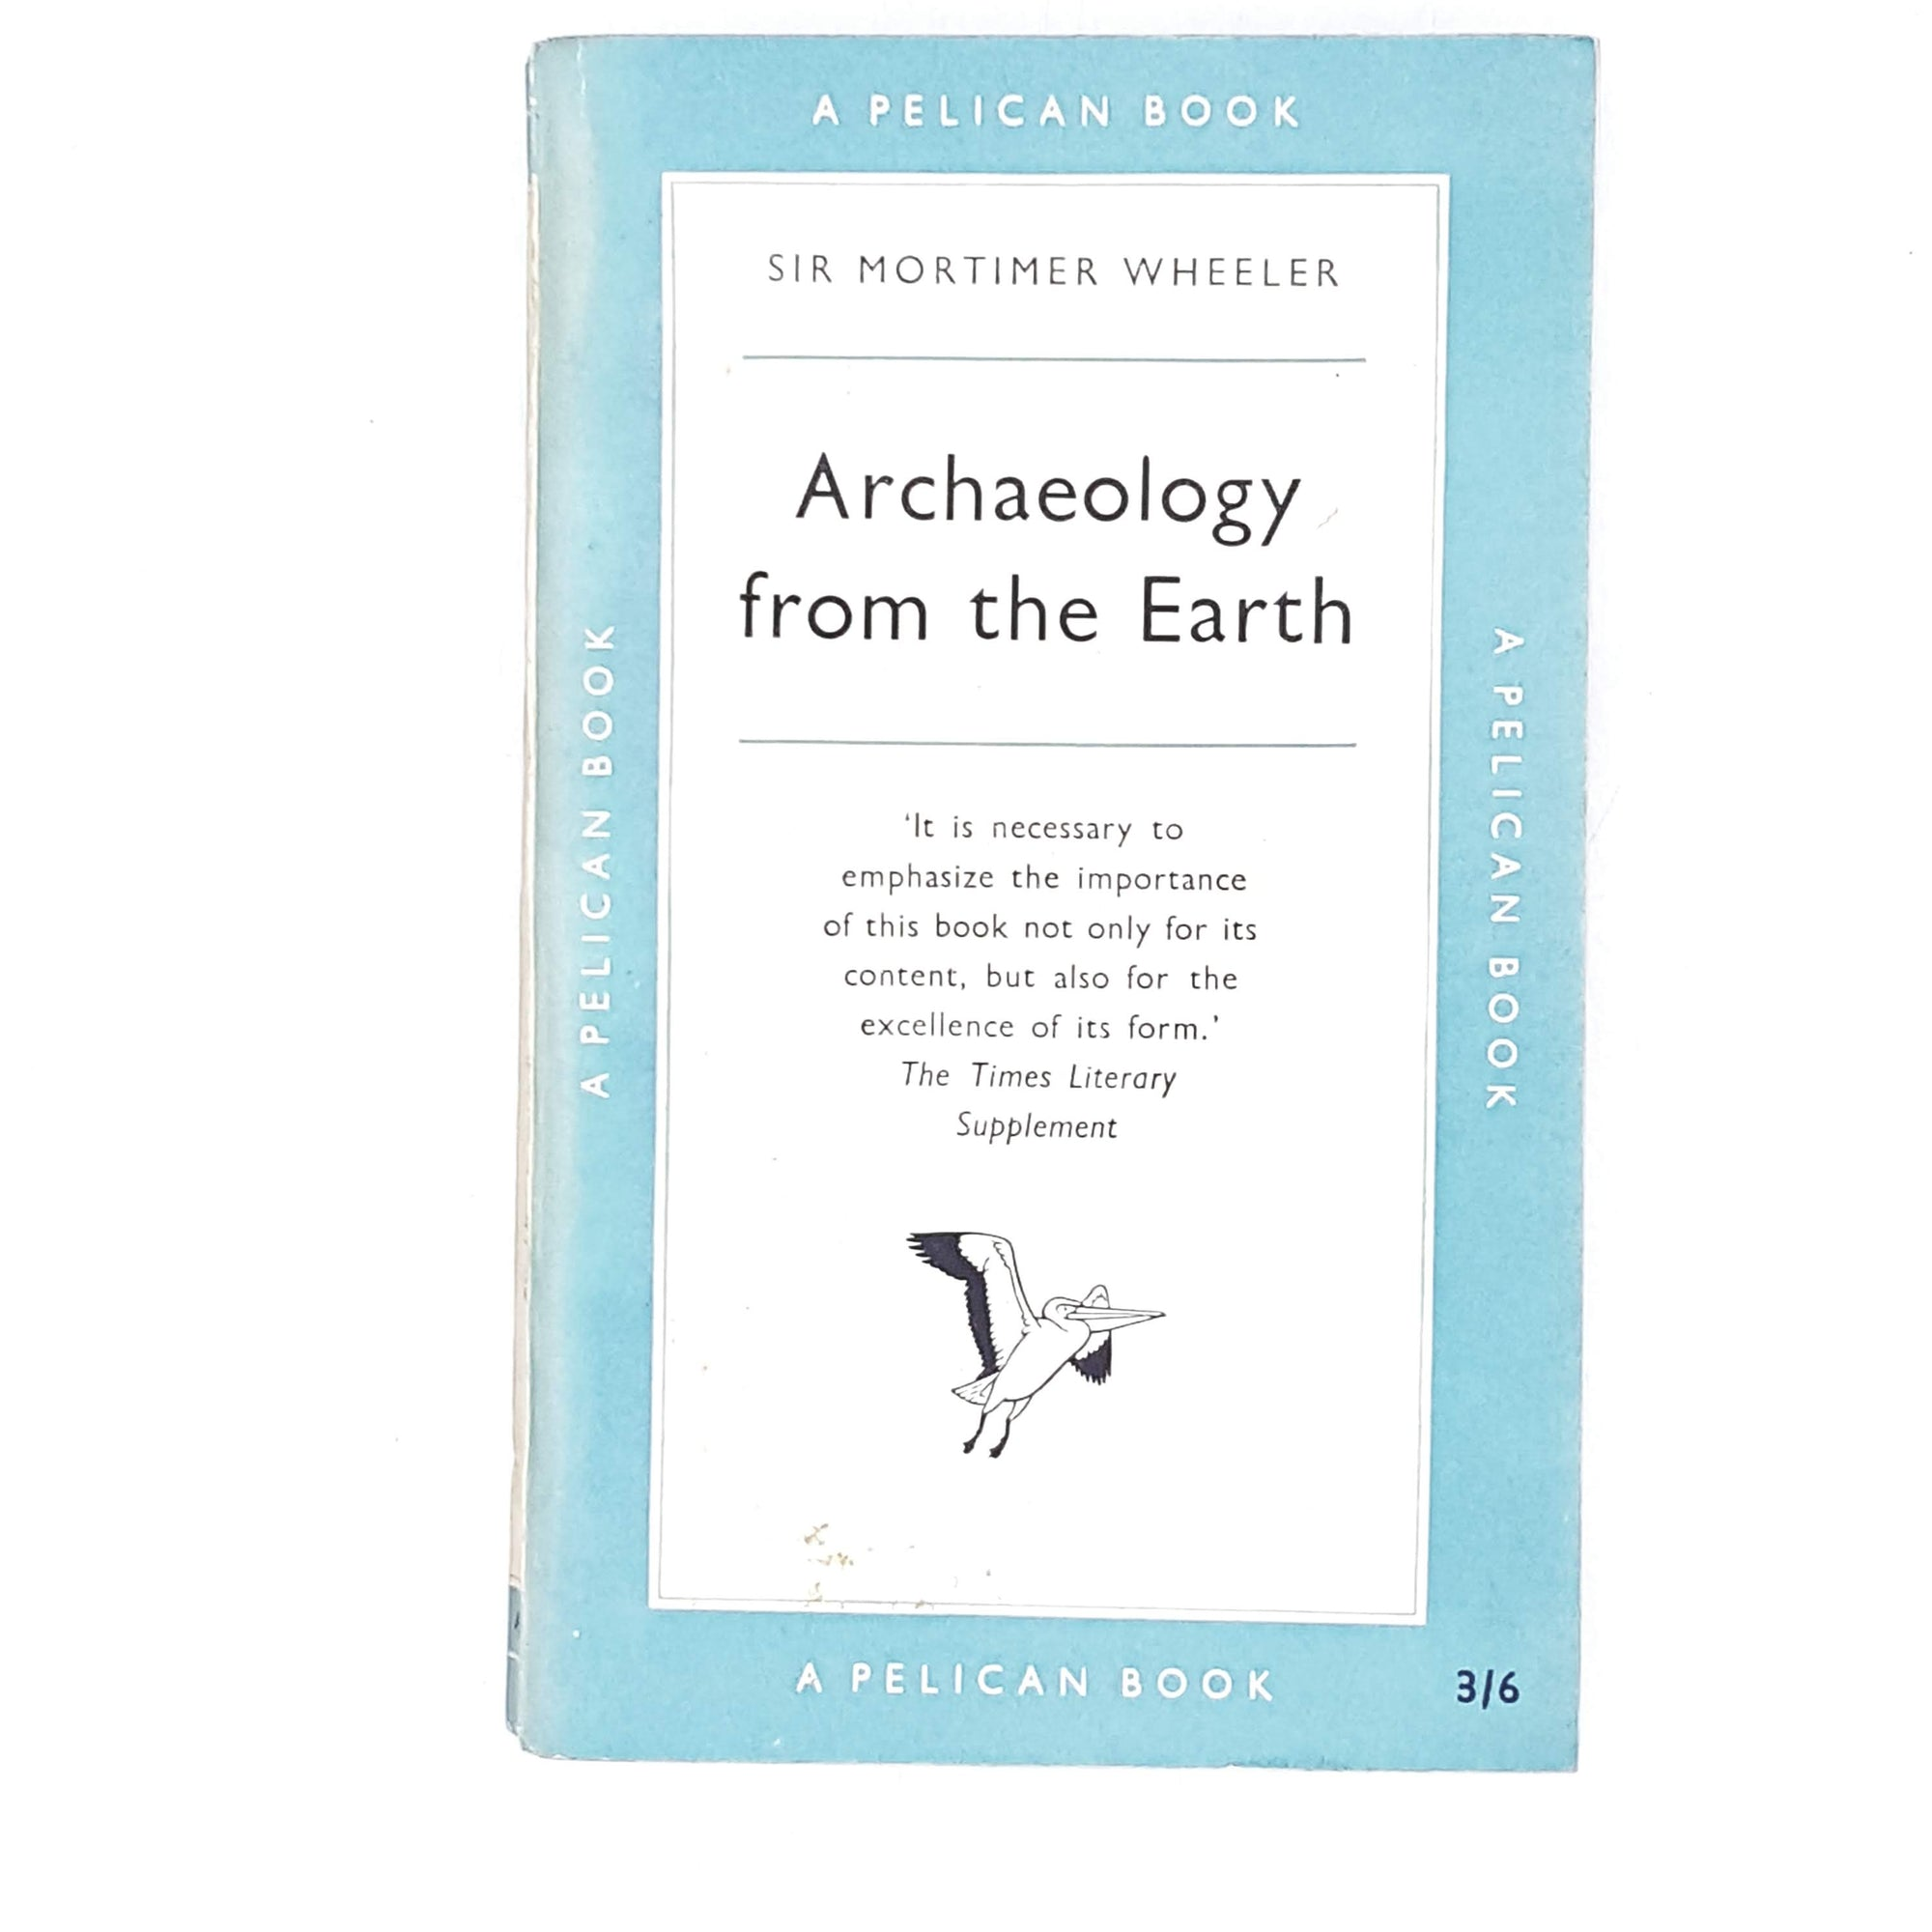 Vintage Pelican Archaeology from the Earth by Sir Mortimer Wheeler 1956